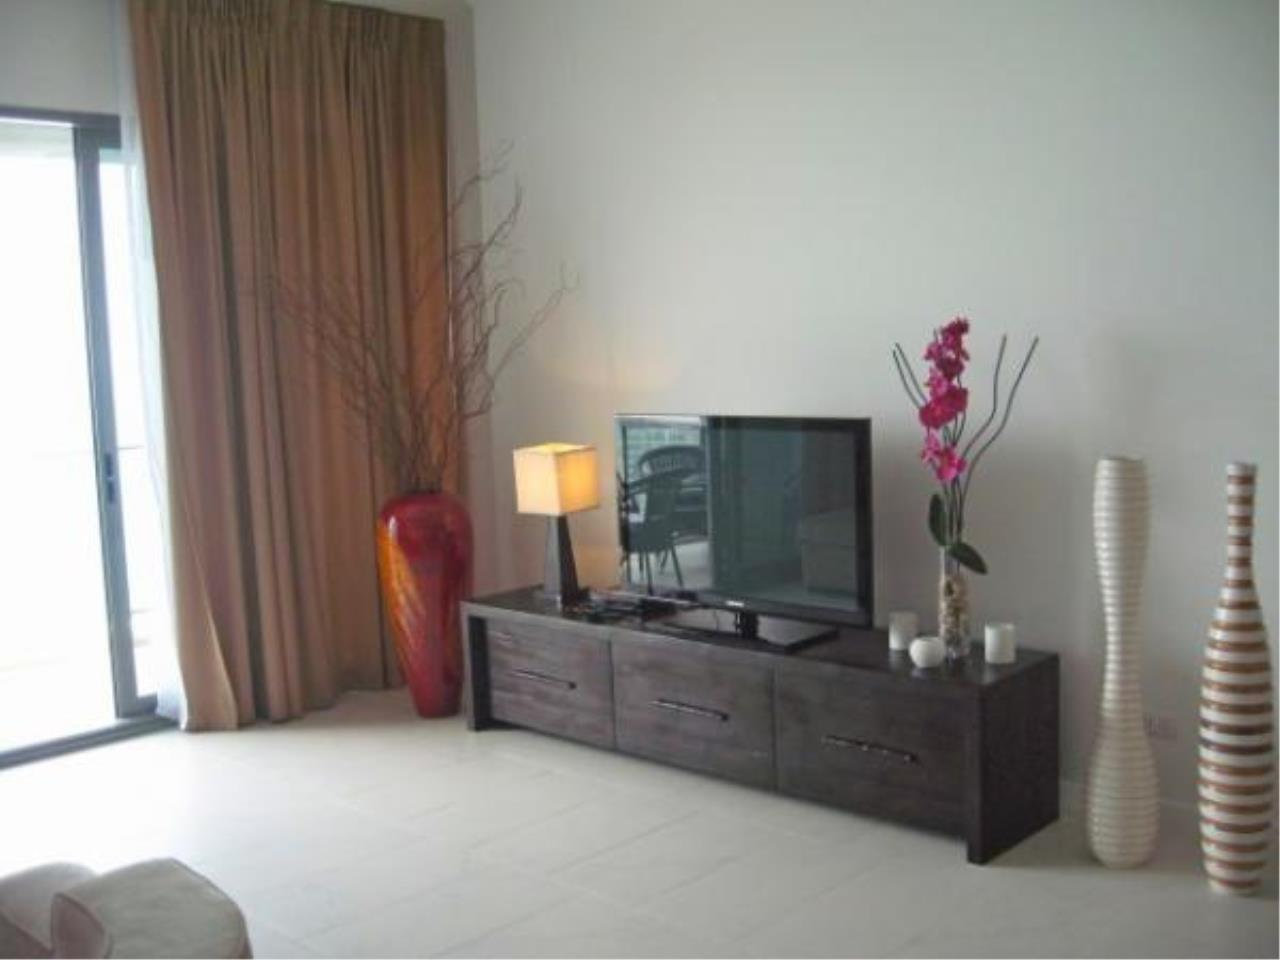 RE/MAX Town & Country Property Agency's Beach front condo for rent in Wong Amat! 3